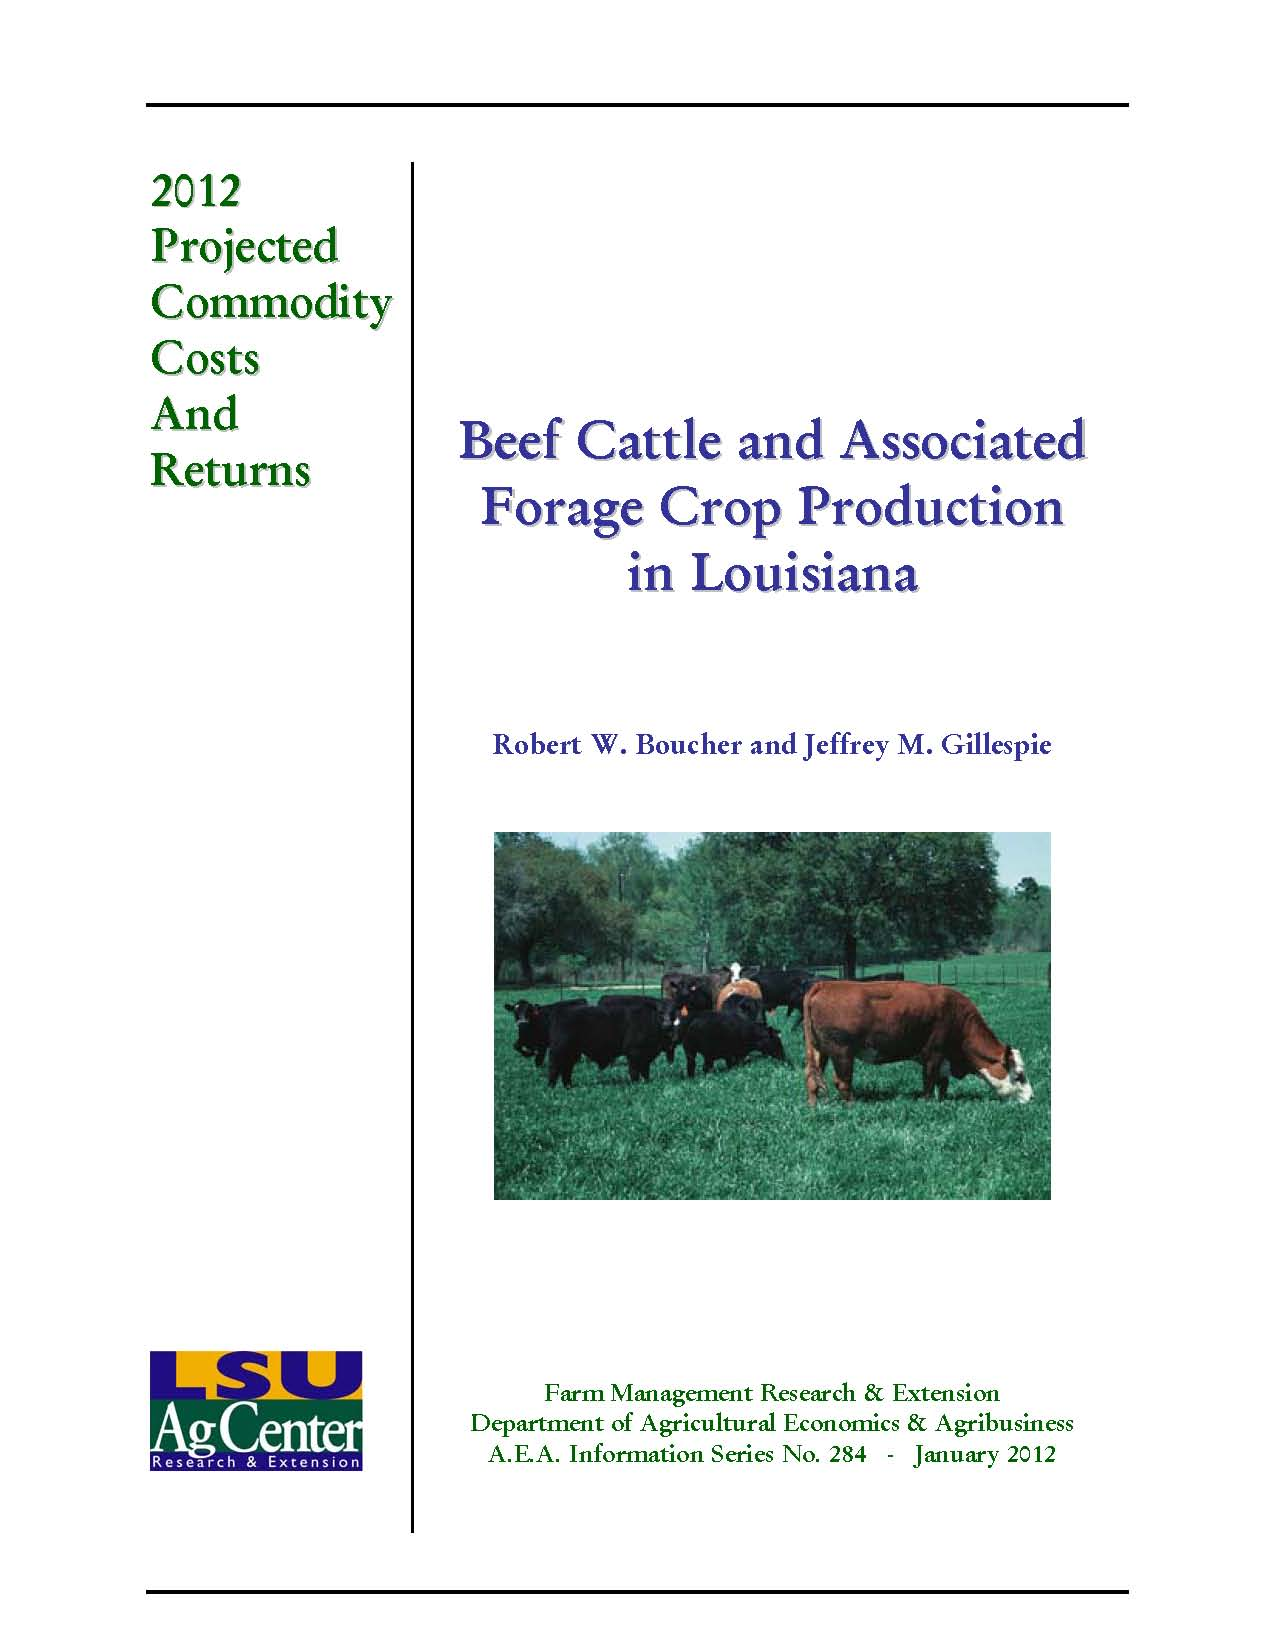 Projected Costs and Returns For Beef Cattle and Associated Forage Crops in Louisiana 2012.